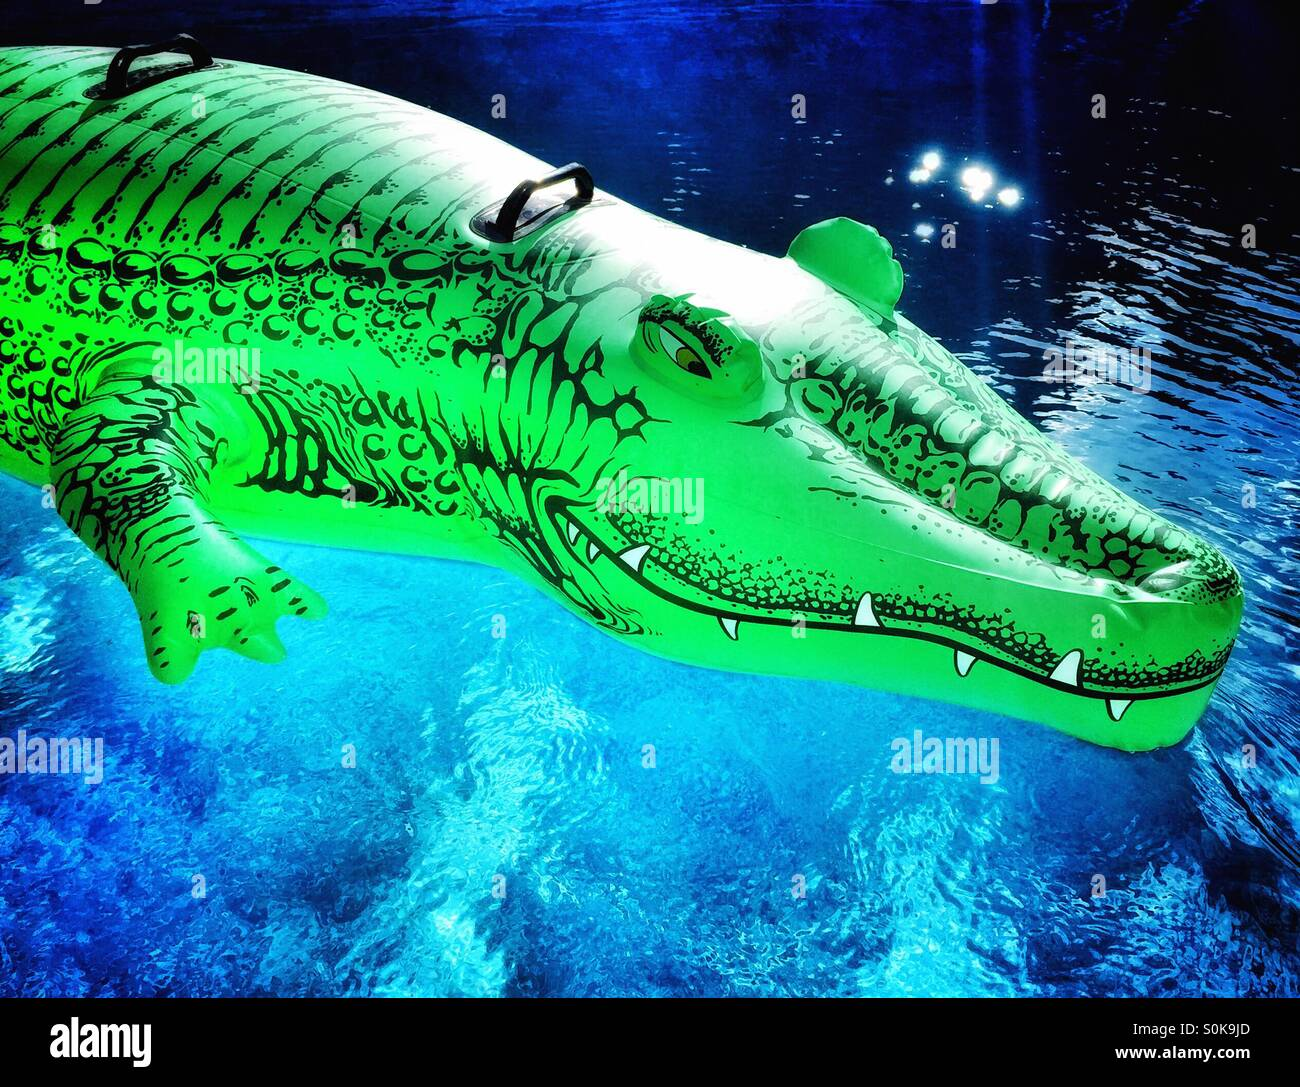 Inflatable Alligator Toy Floating On Blue Water.